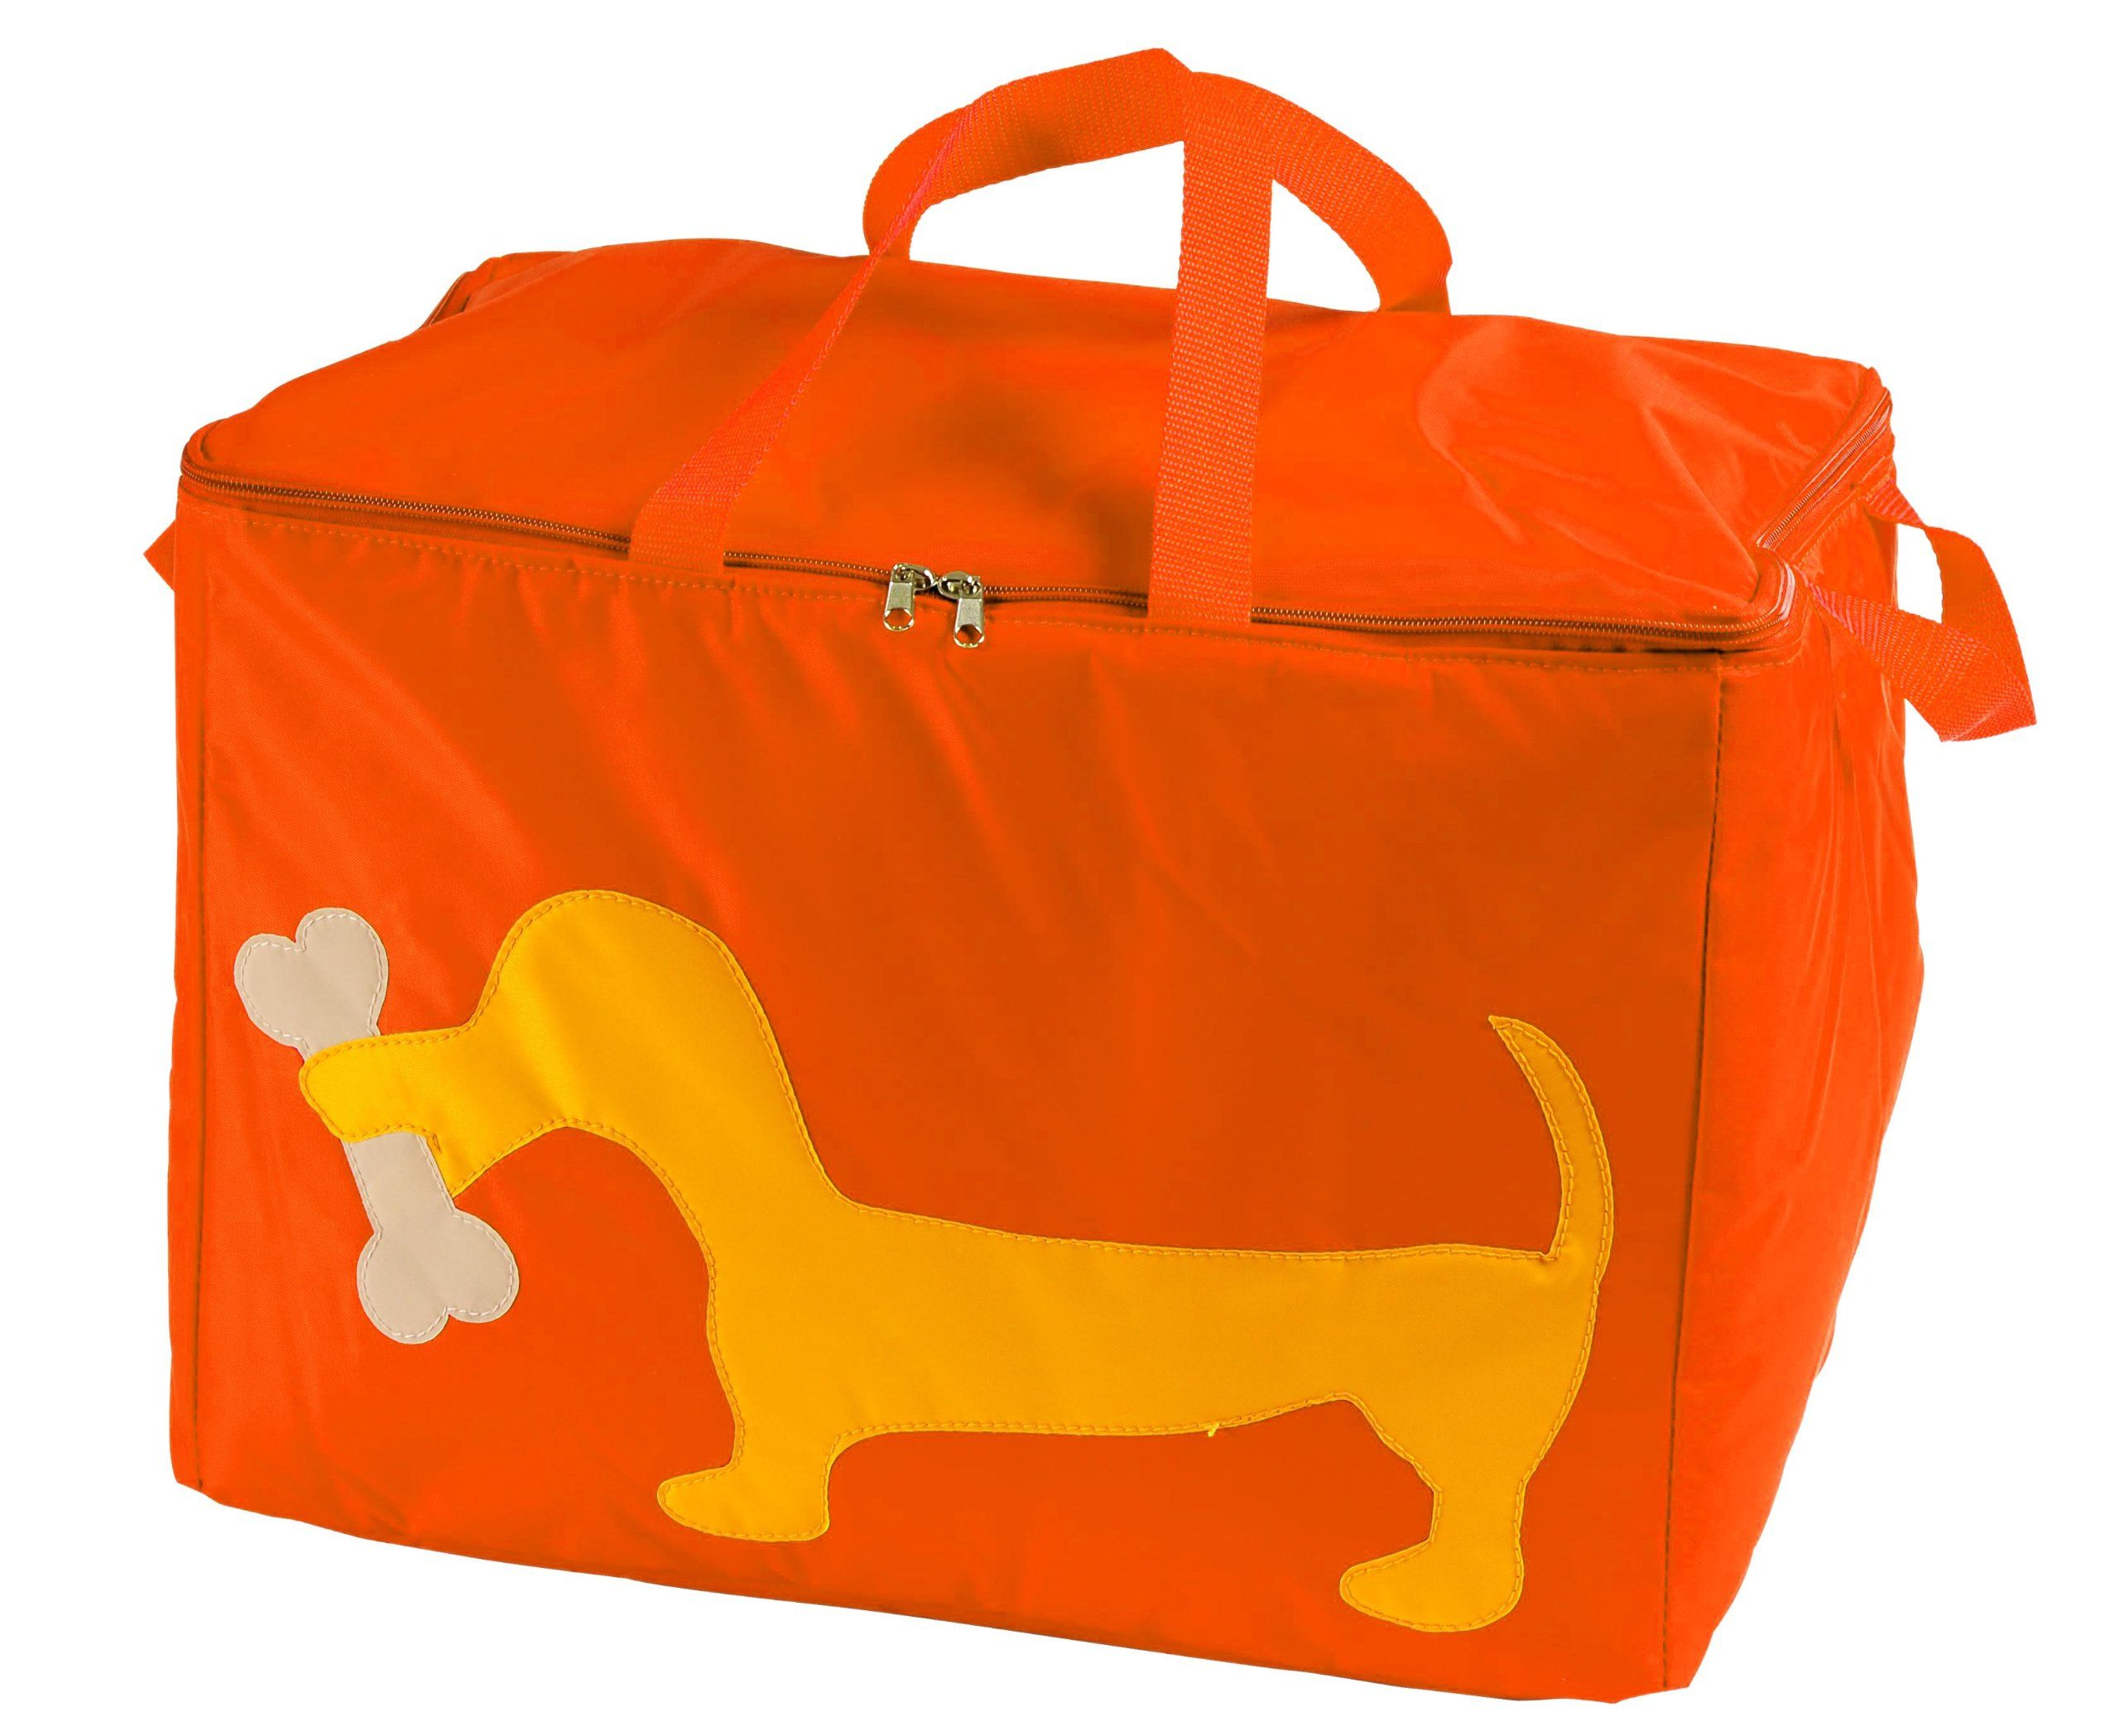 Petego United Pets Huggy Bag Italian-Designed Pet Accessory Carry Bag, Orange with Dog, 20 Inches by 12 Inches by 12 Inches